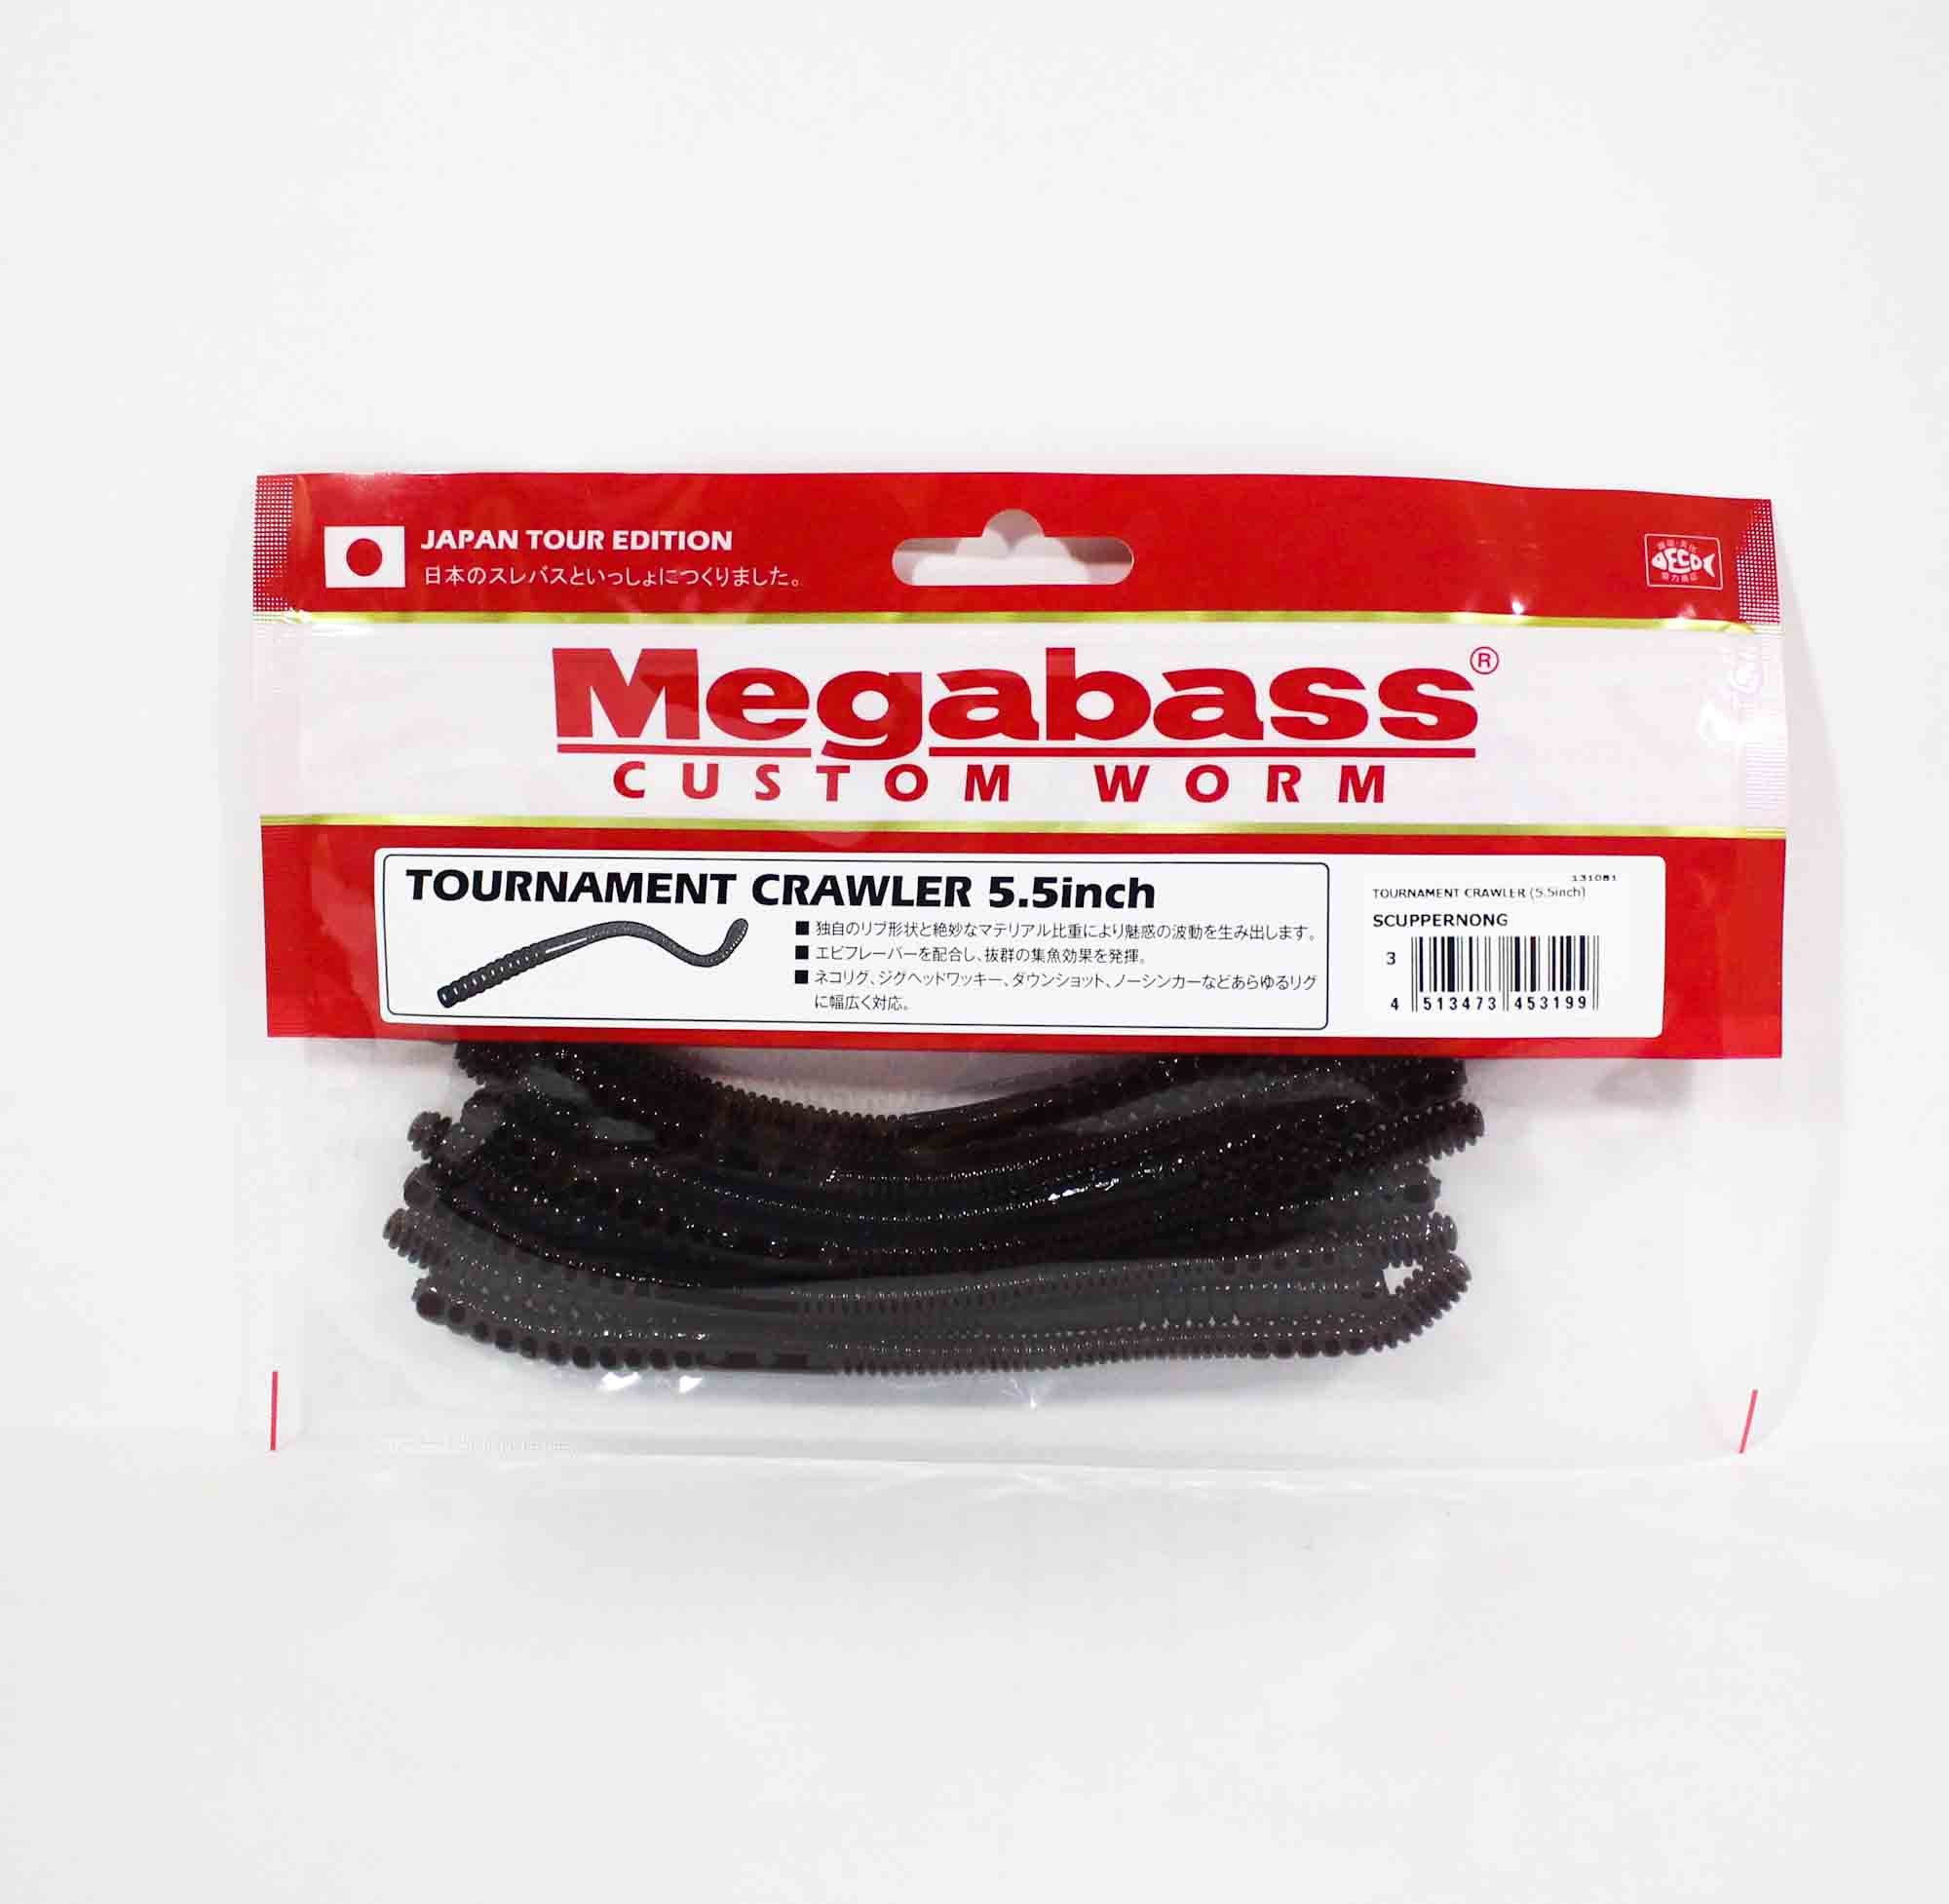 Megabass Tournament Crawler 5.5 Inch Soft Lure Scuppernong (3199)